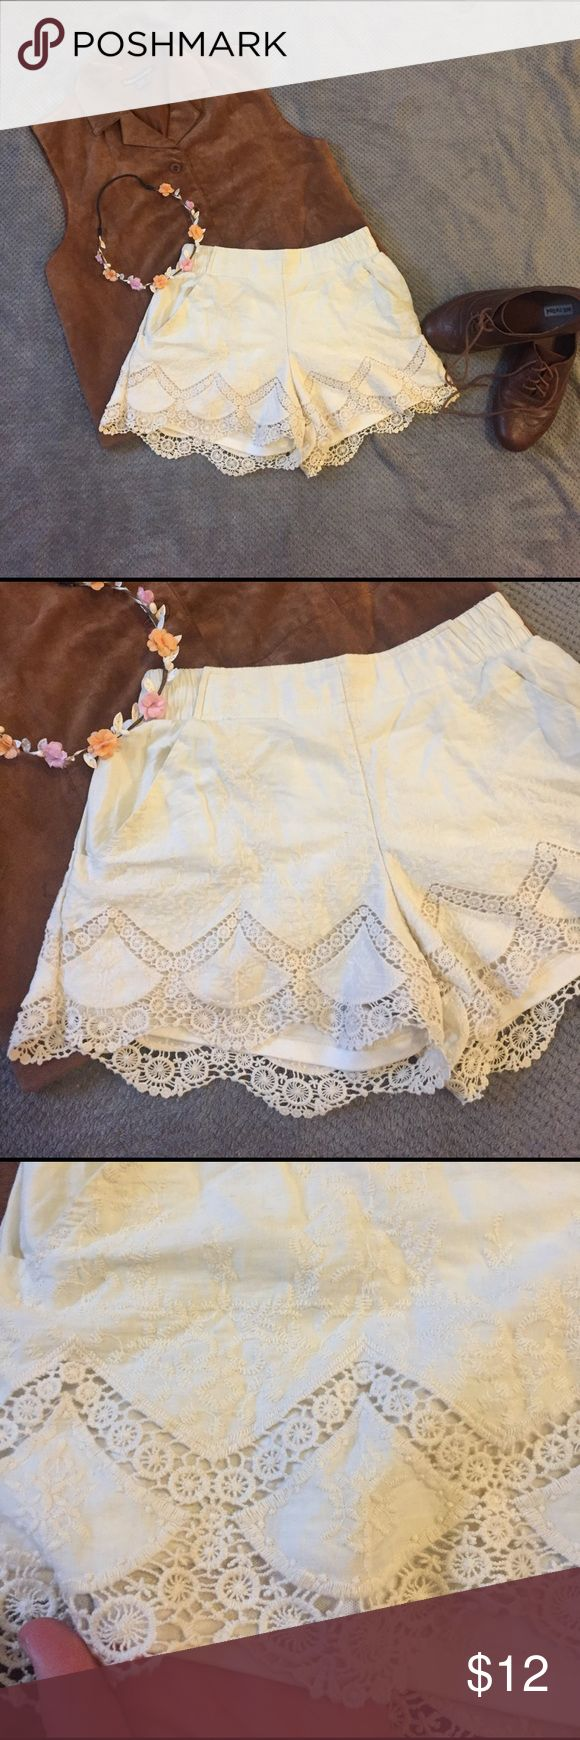 Cream Lace Shorts Super cute and flattering cream shorts with lace detail. They are comfy, super gently used, elastic waist. Xhilaration Shorts